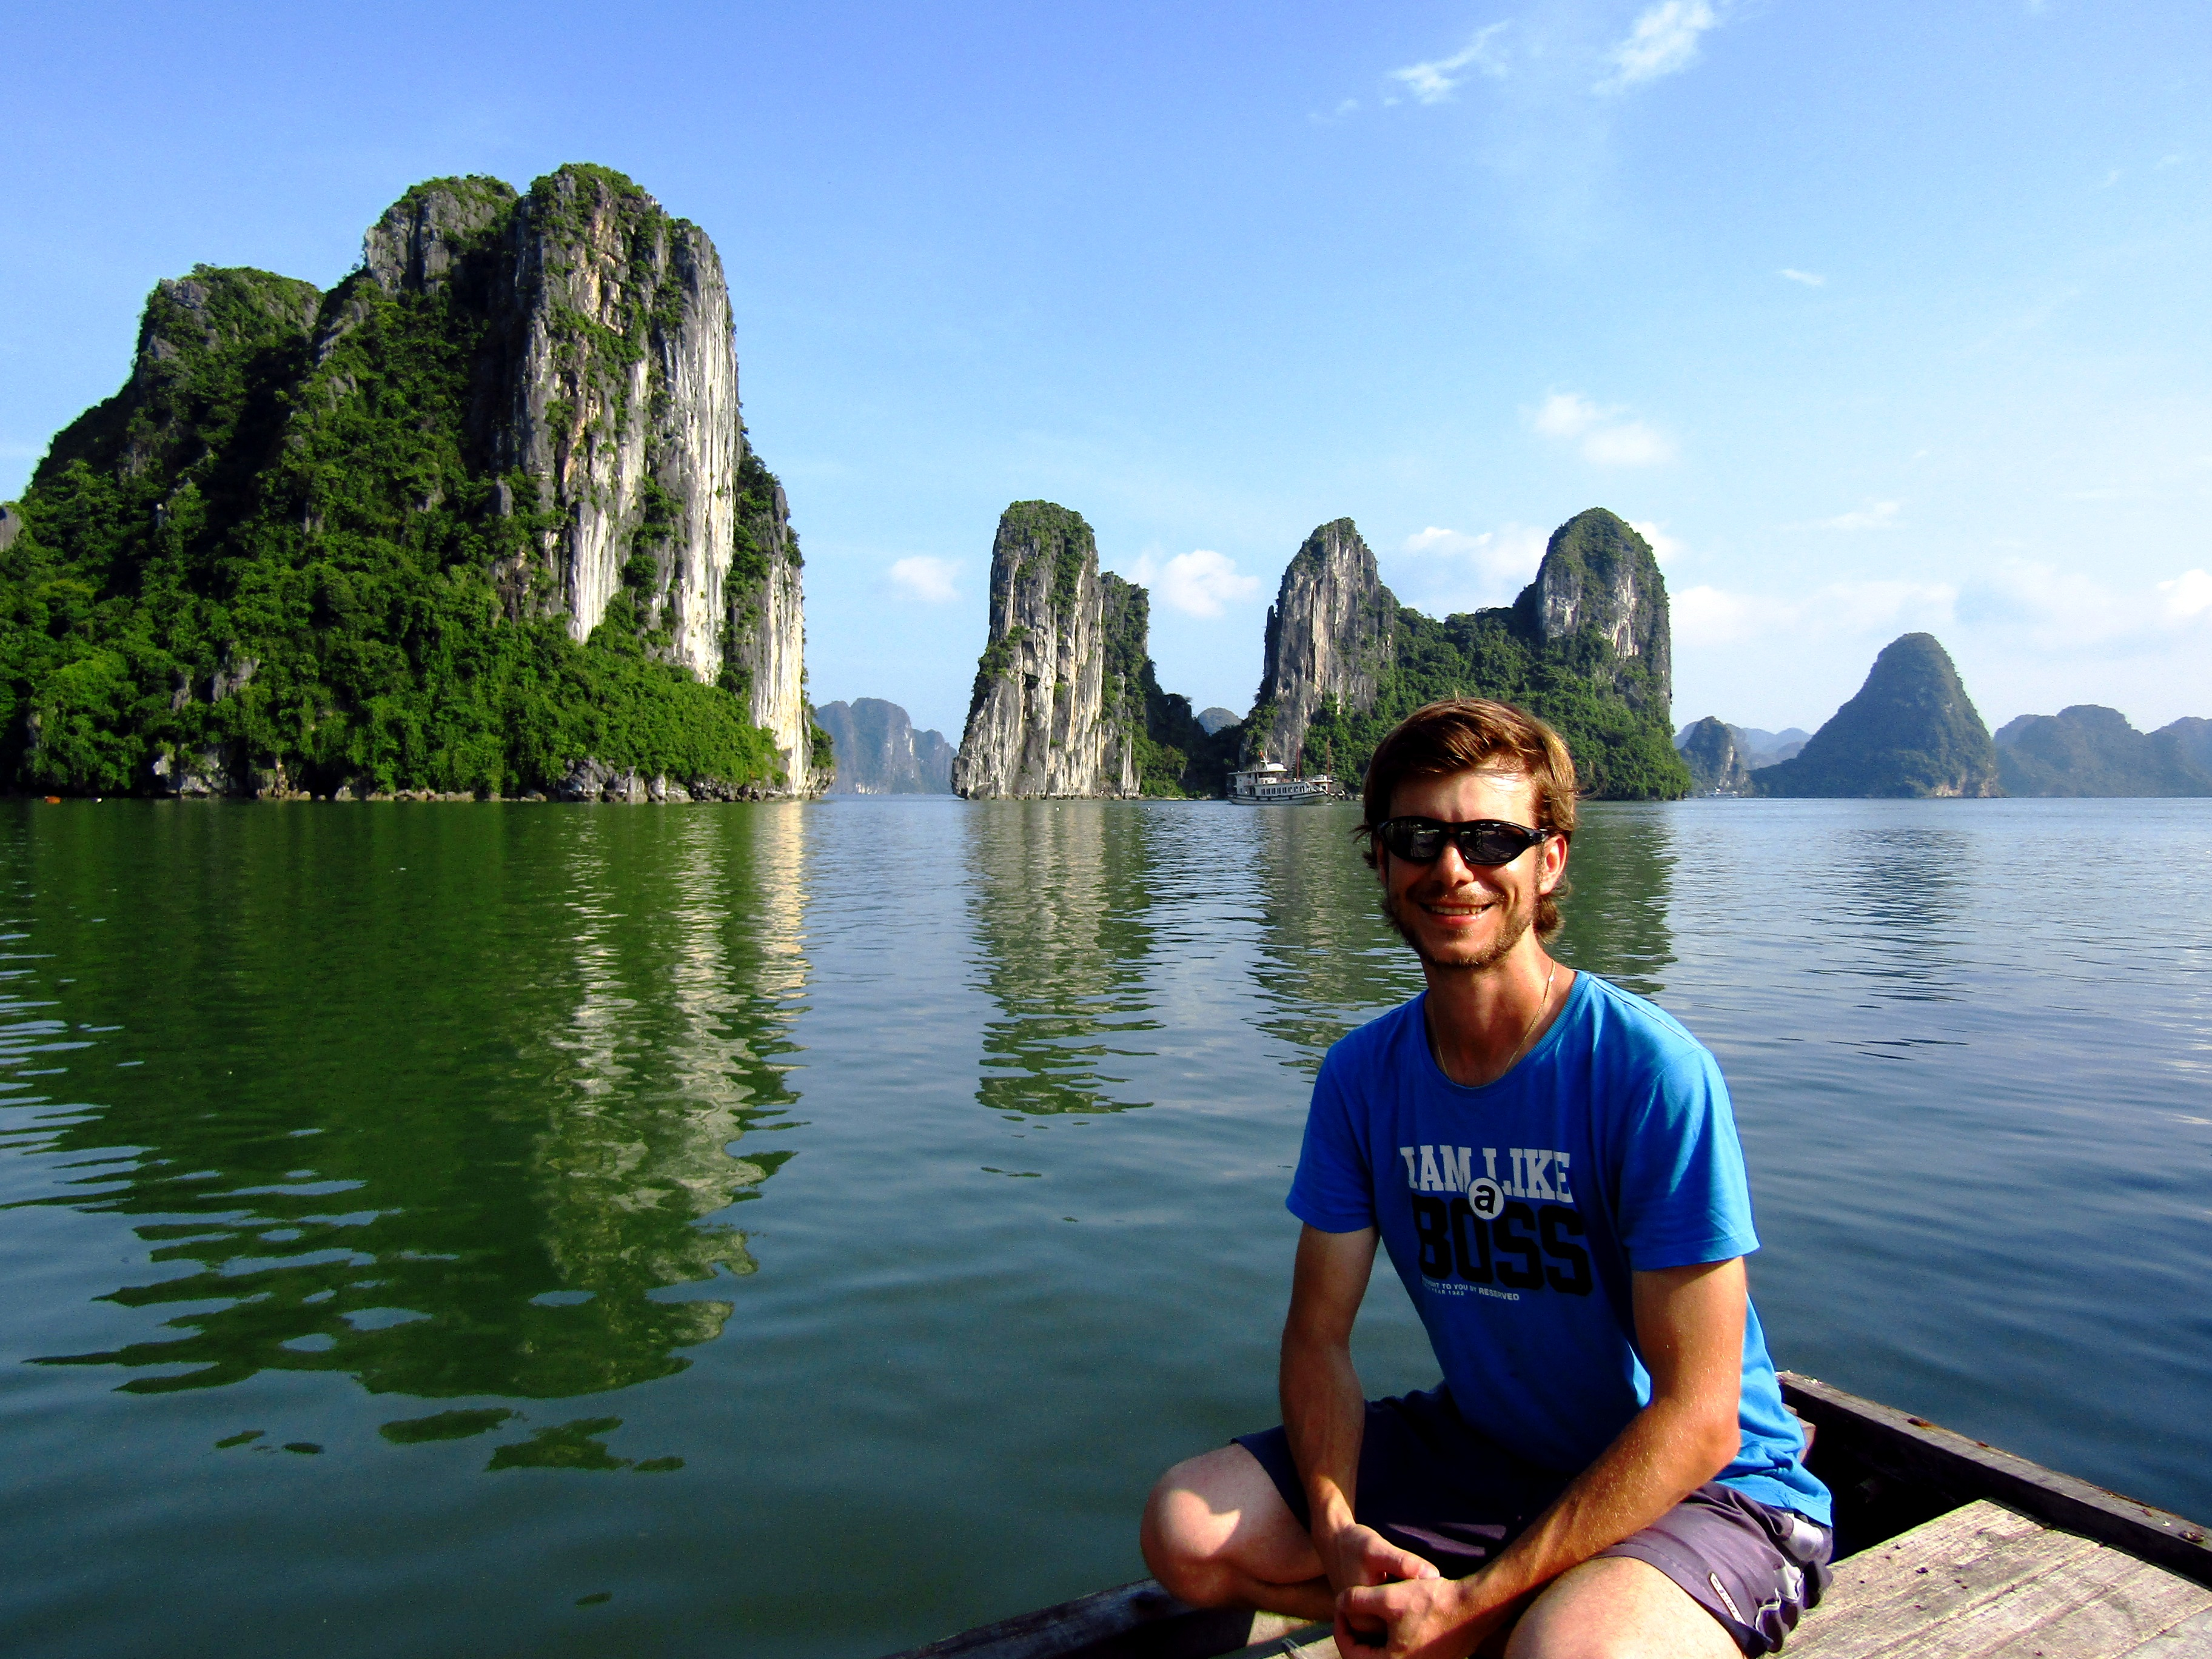 The one and only stunning Halong Bay